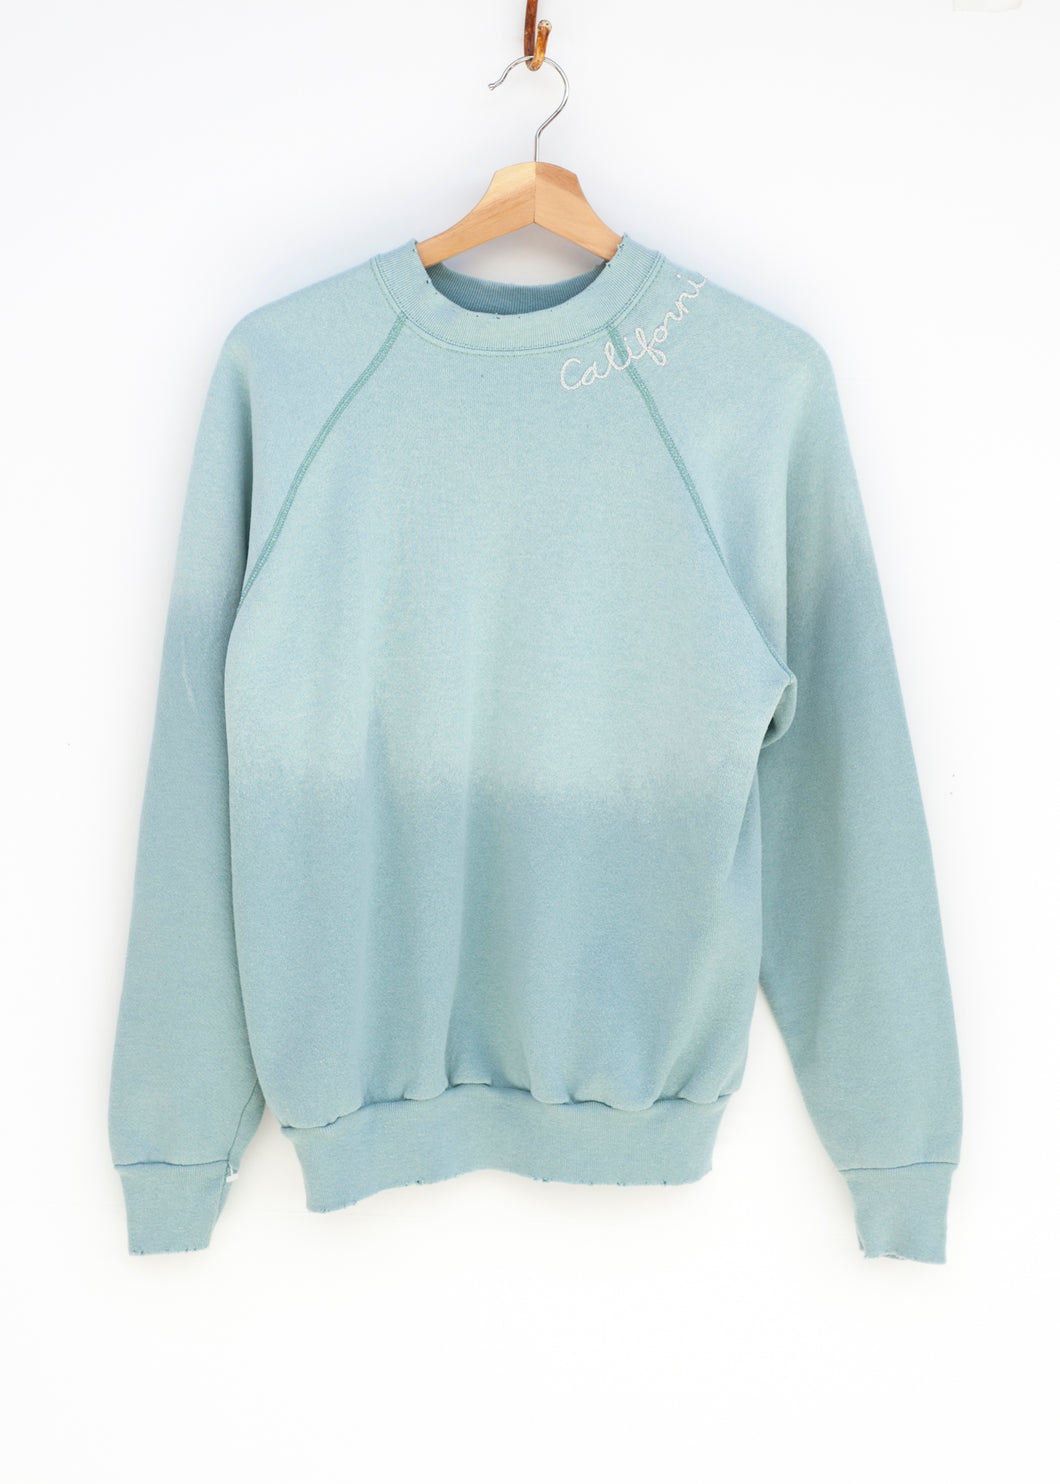 California Sweatshirt - Powder Blue